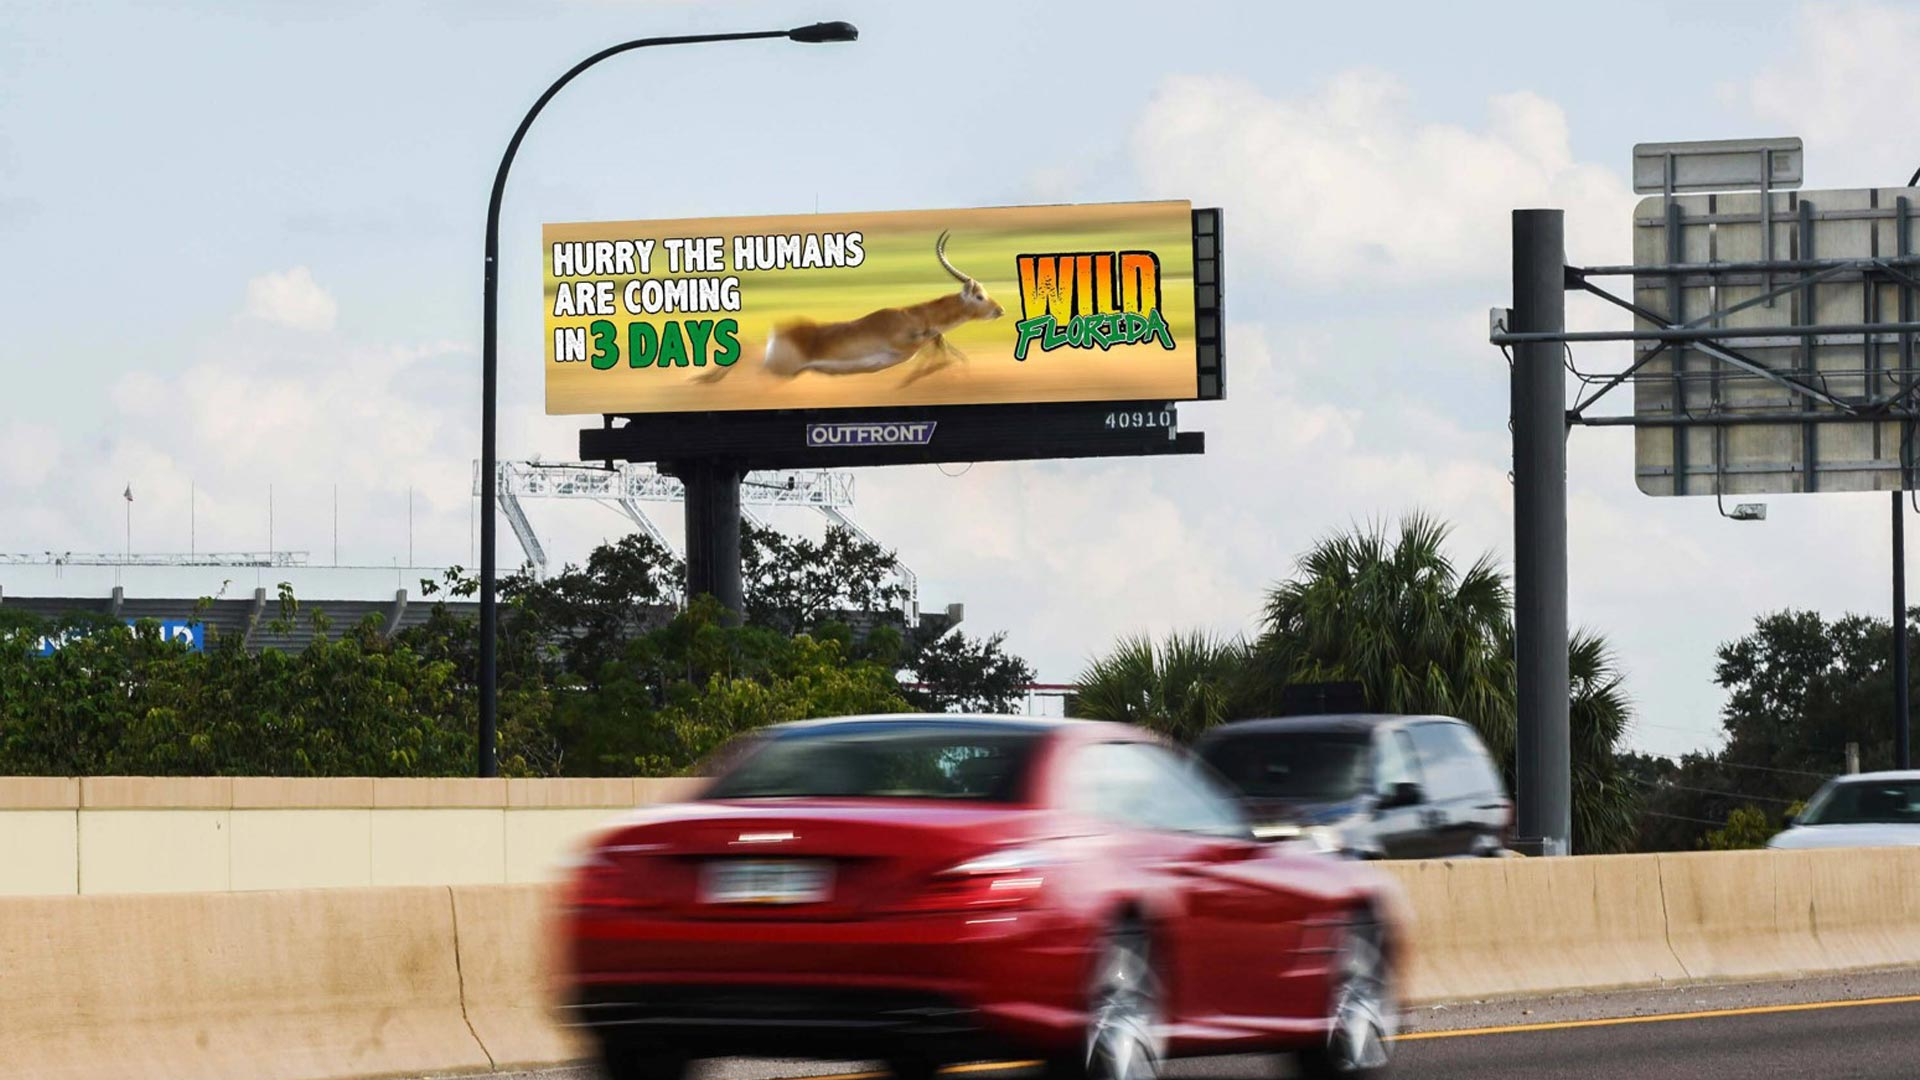 outfront studios creative digital design for wild florida out of home billboard advertising